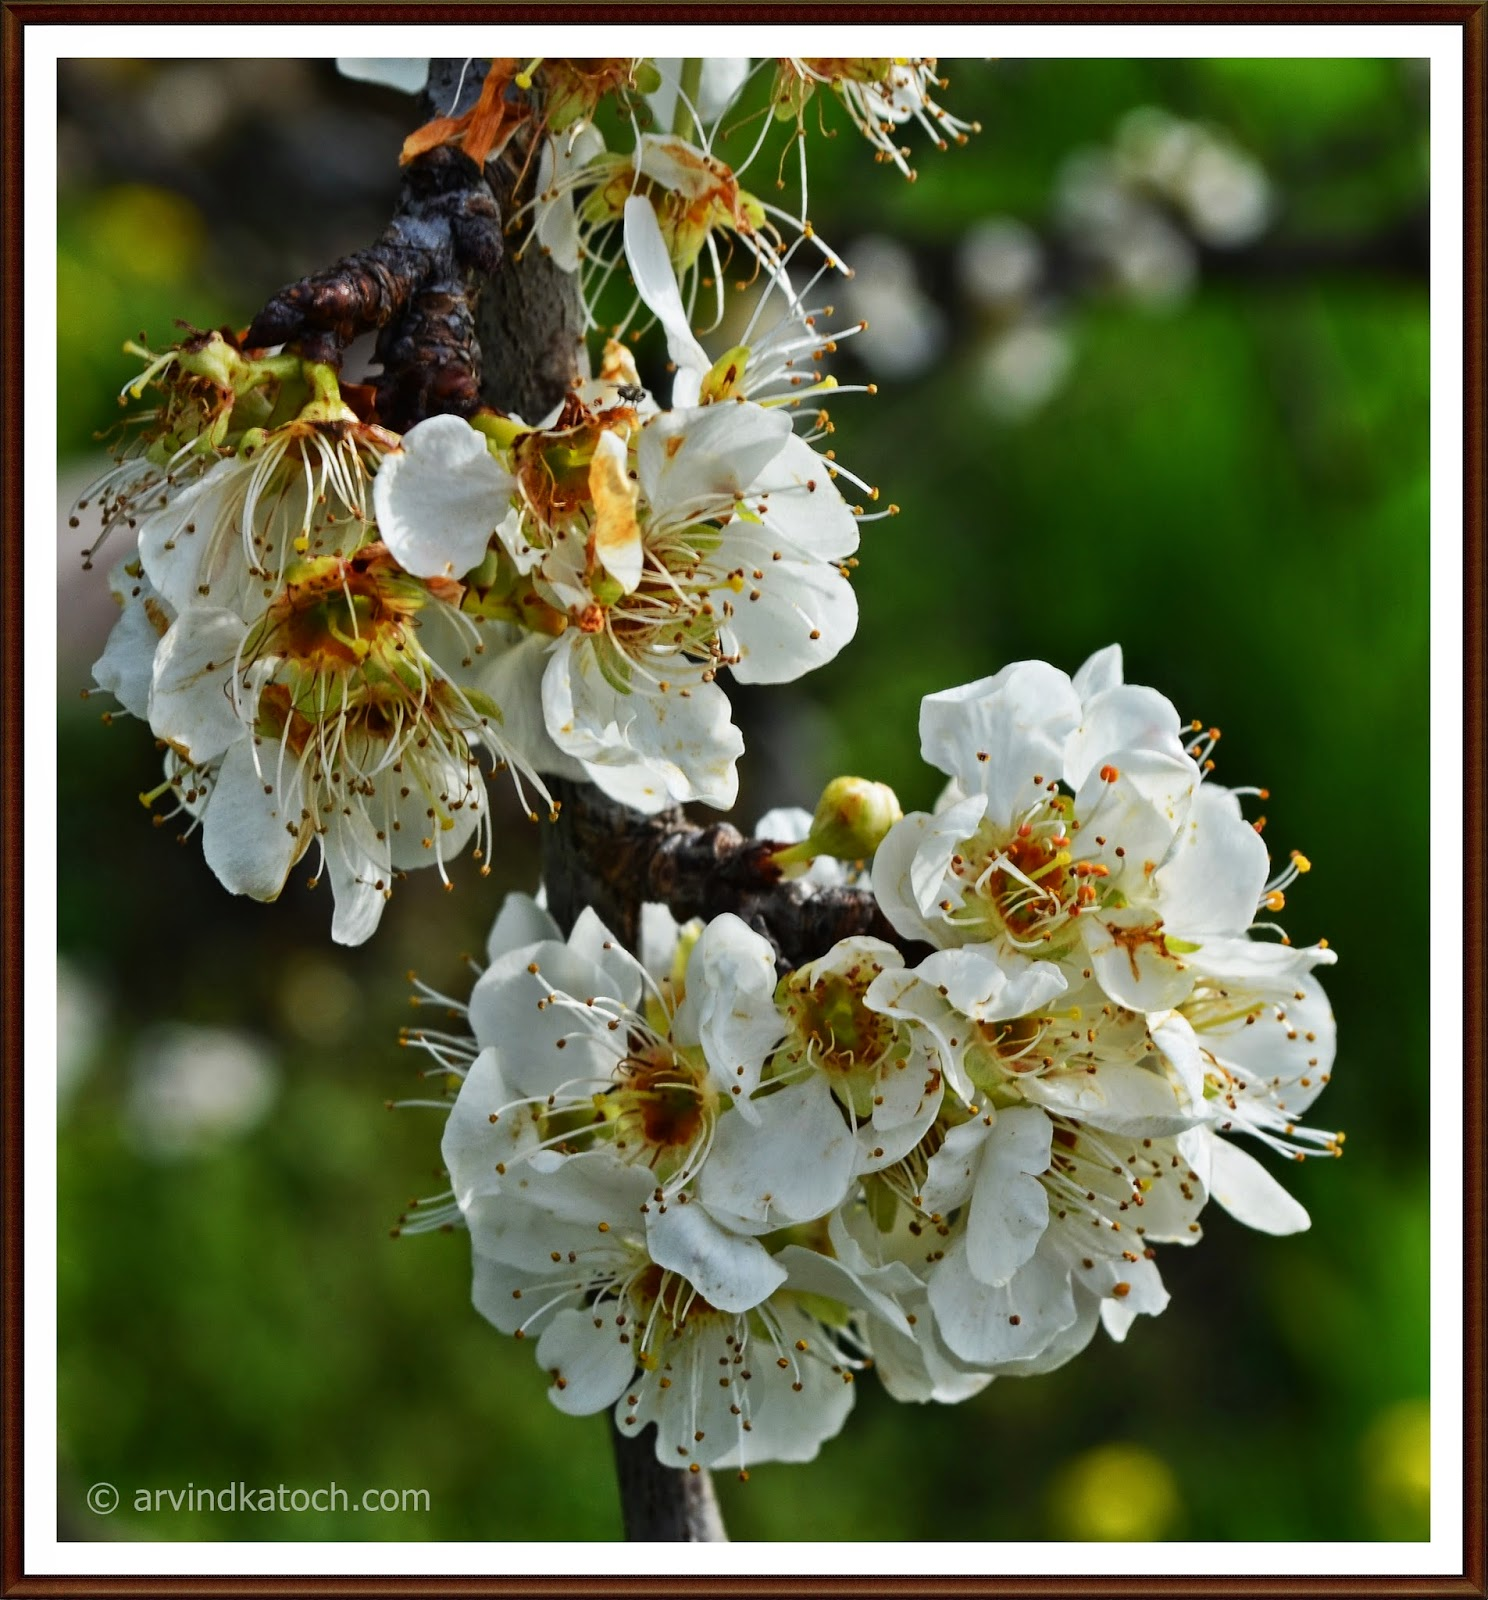 White Pear Flowers, Pear, Flower,